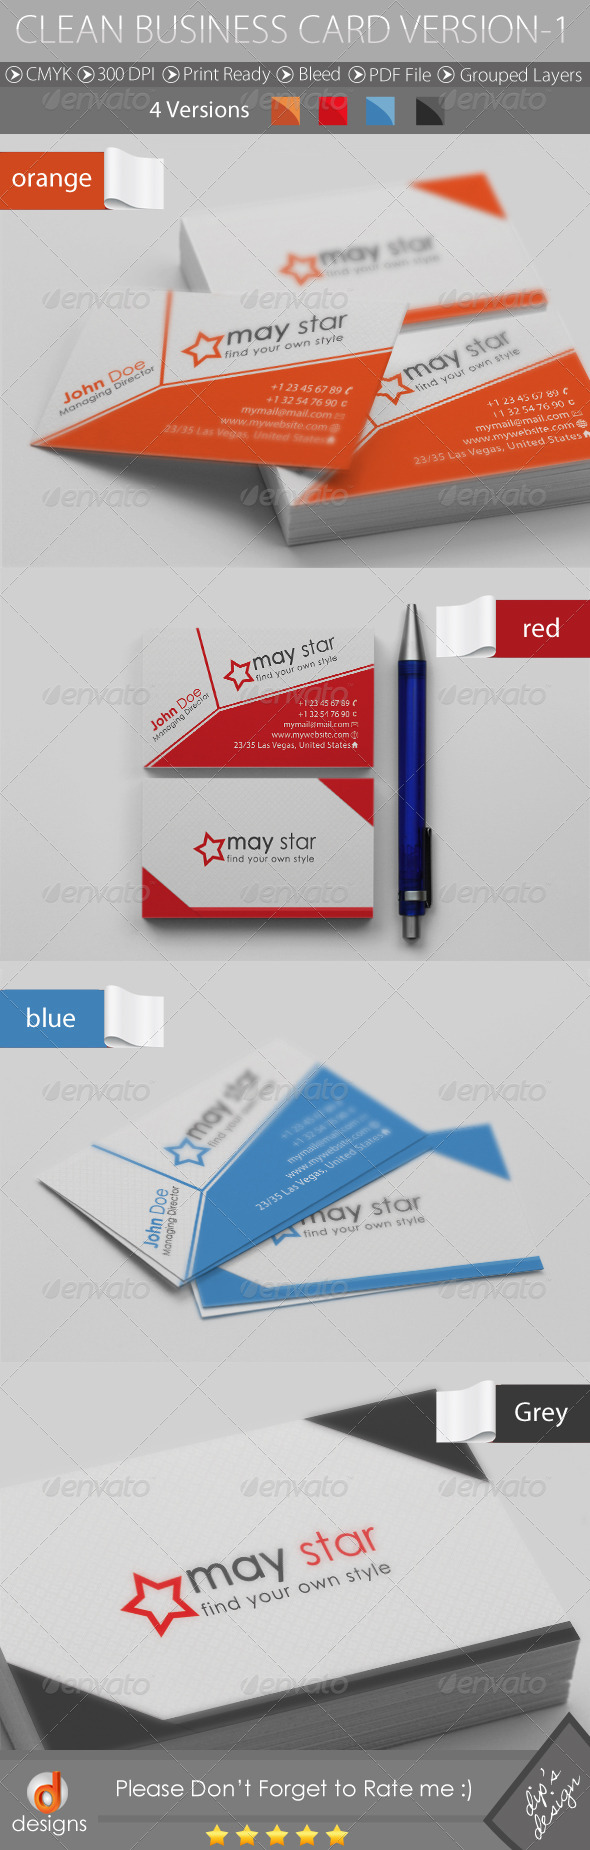 GraphicRiver Clean Business Card Version-1 4656196